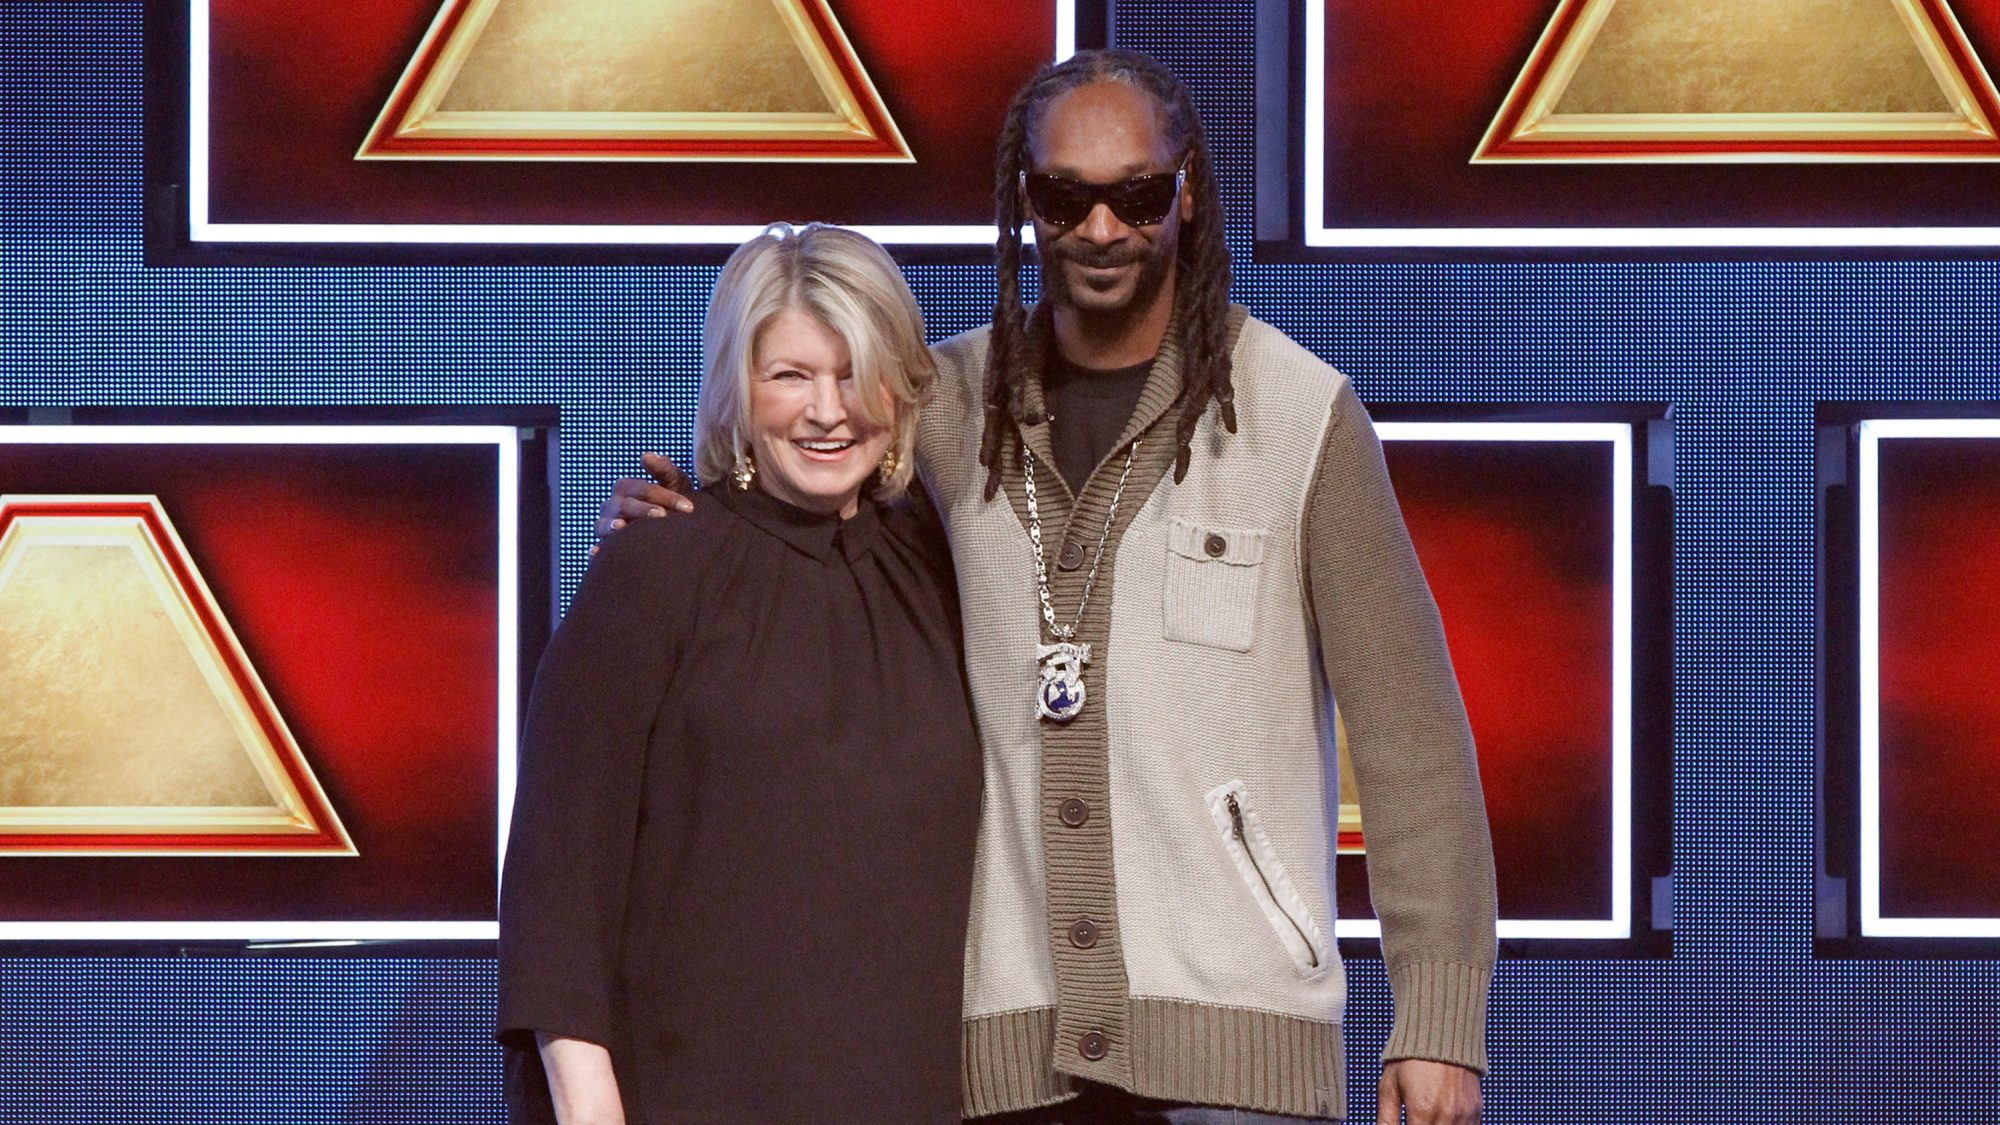 snoop-dogg-and-martha-stewart-FT-BLOG1116.jpg